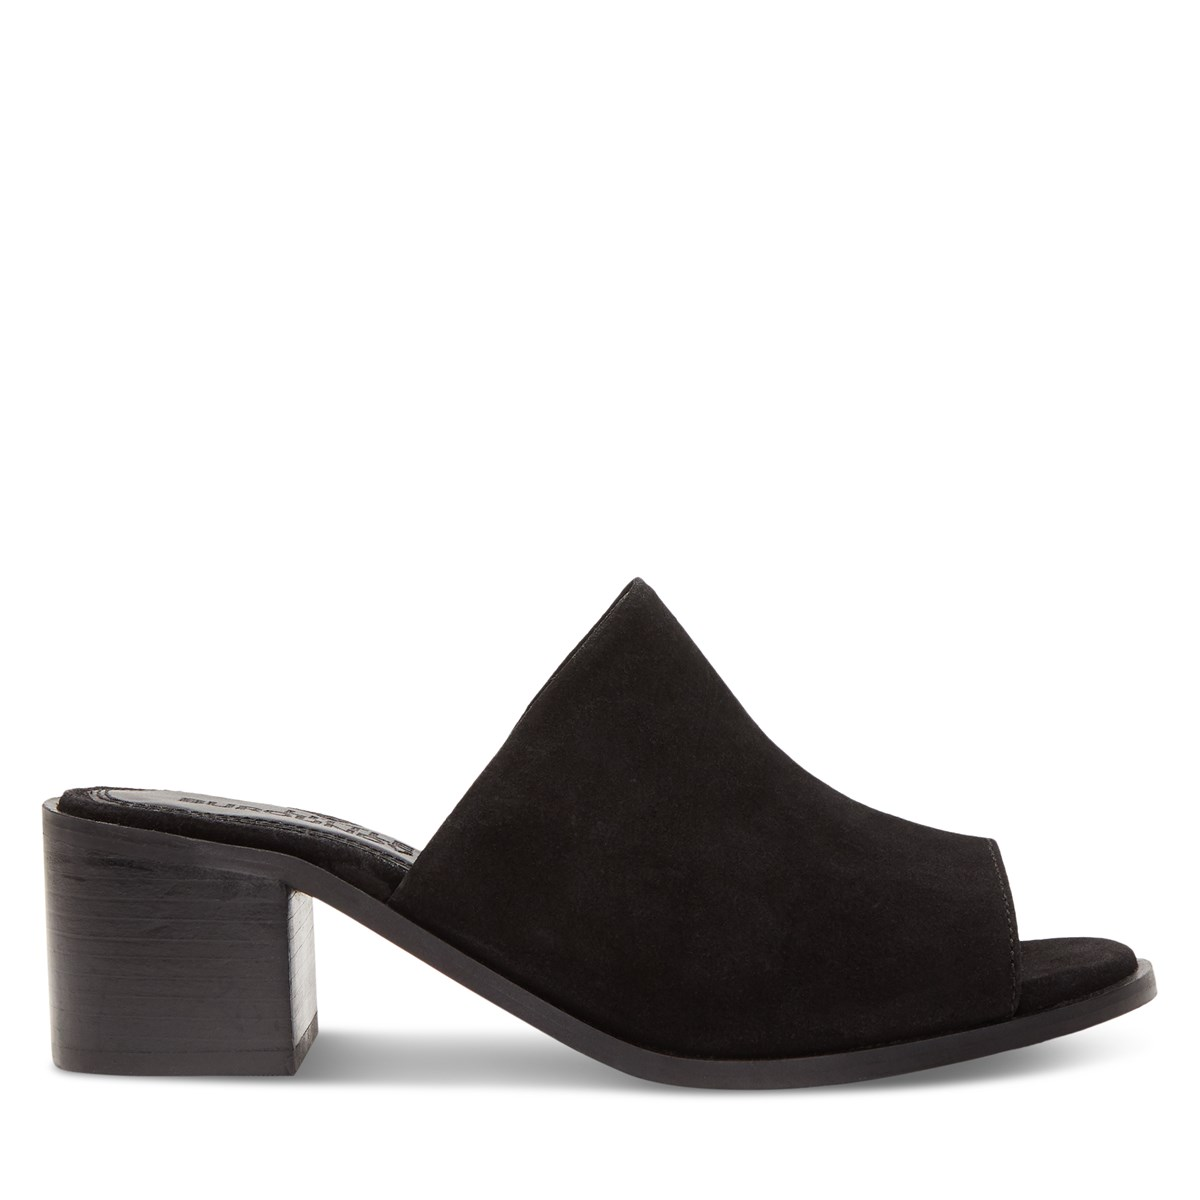 Women's Olivia Heeled Mules in Black